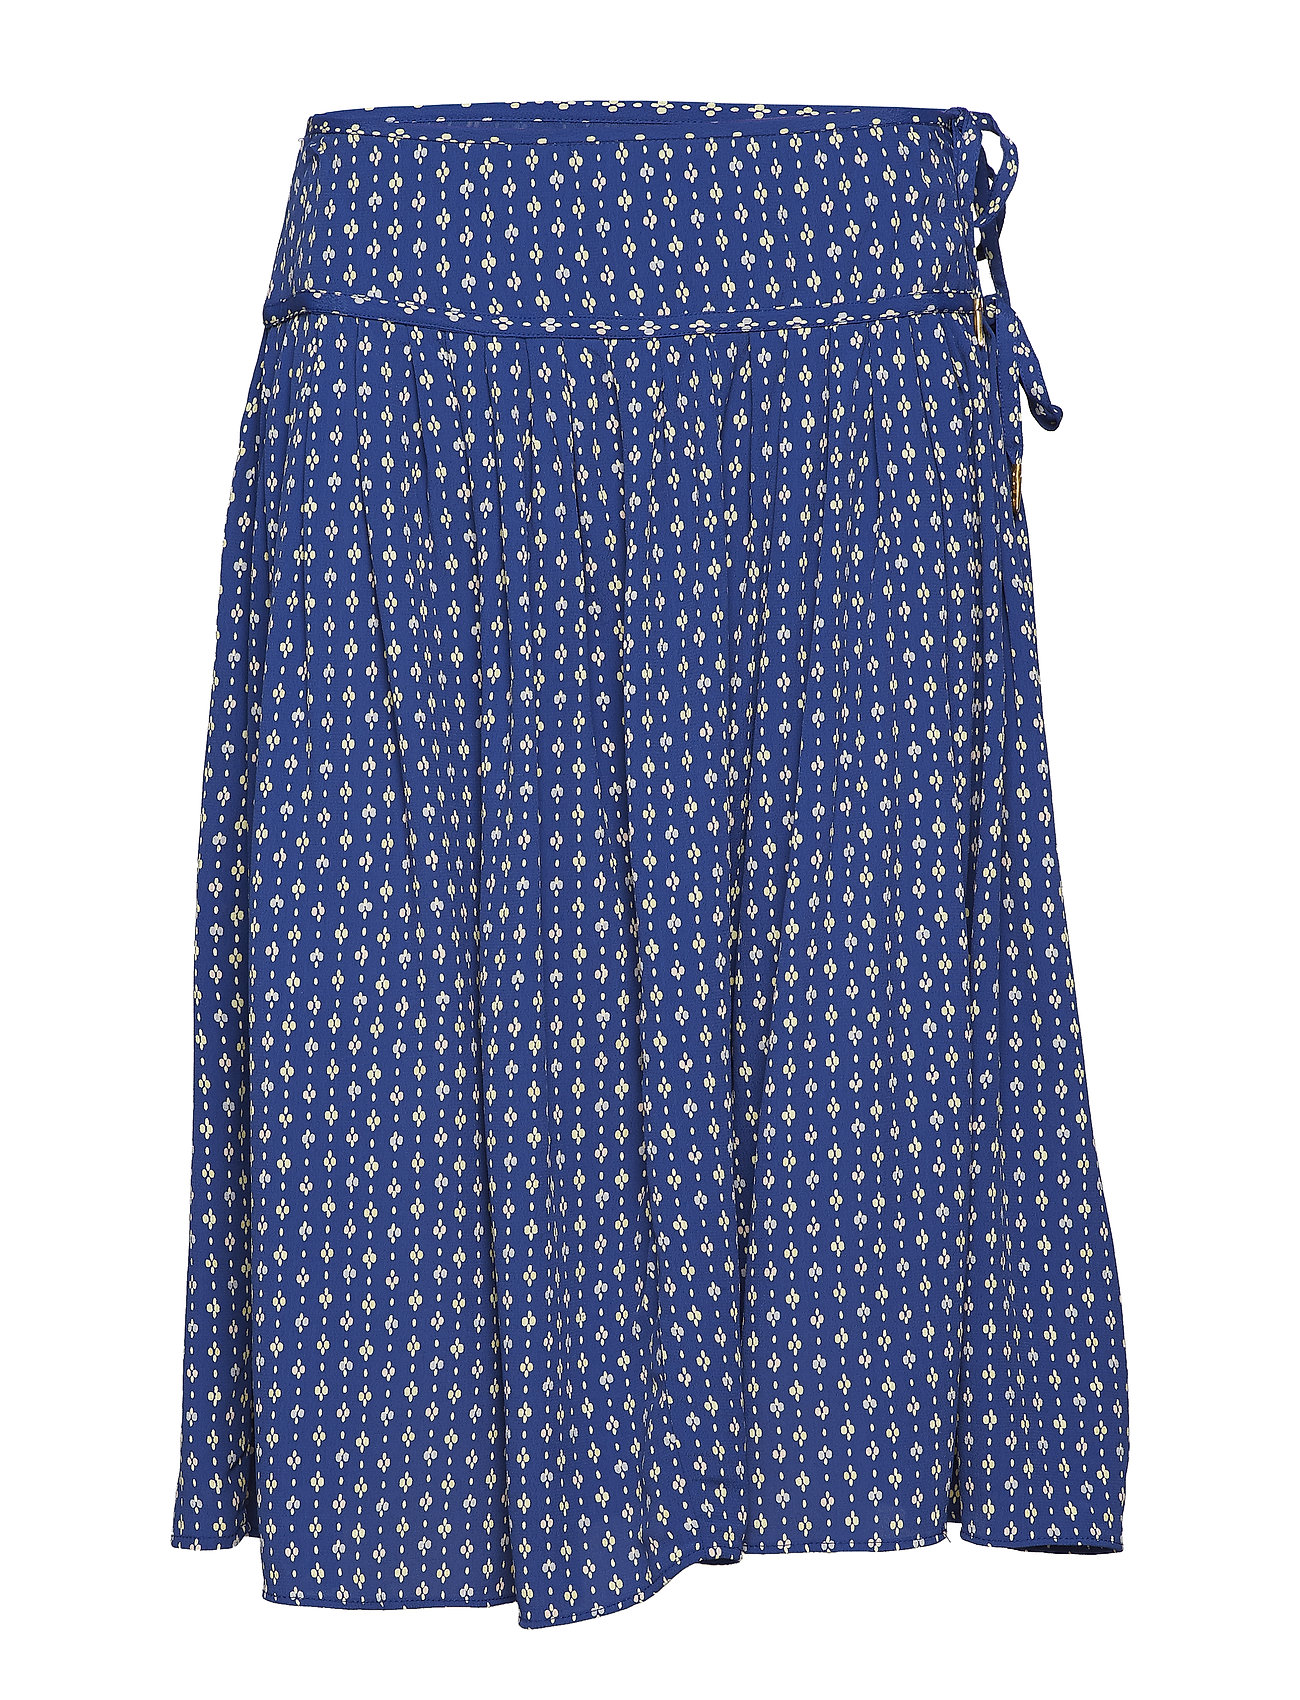 Noa Noa Skirt Nederdele DRESS BLUES Kvinder Mode Casual